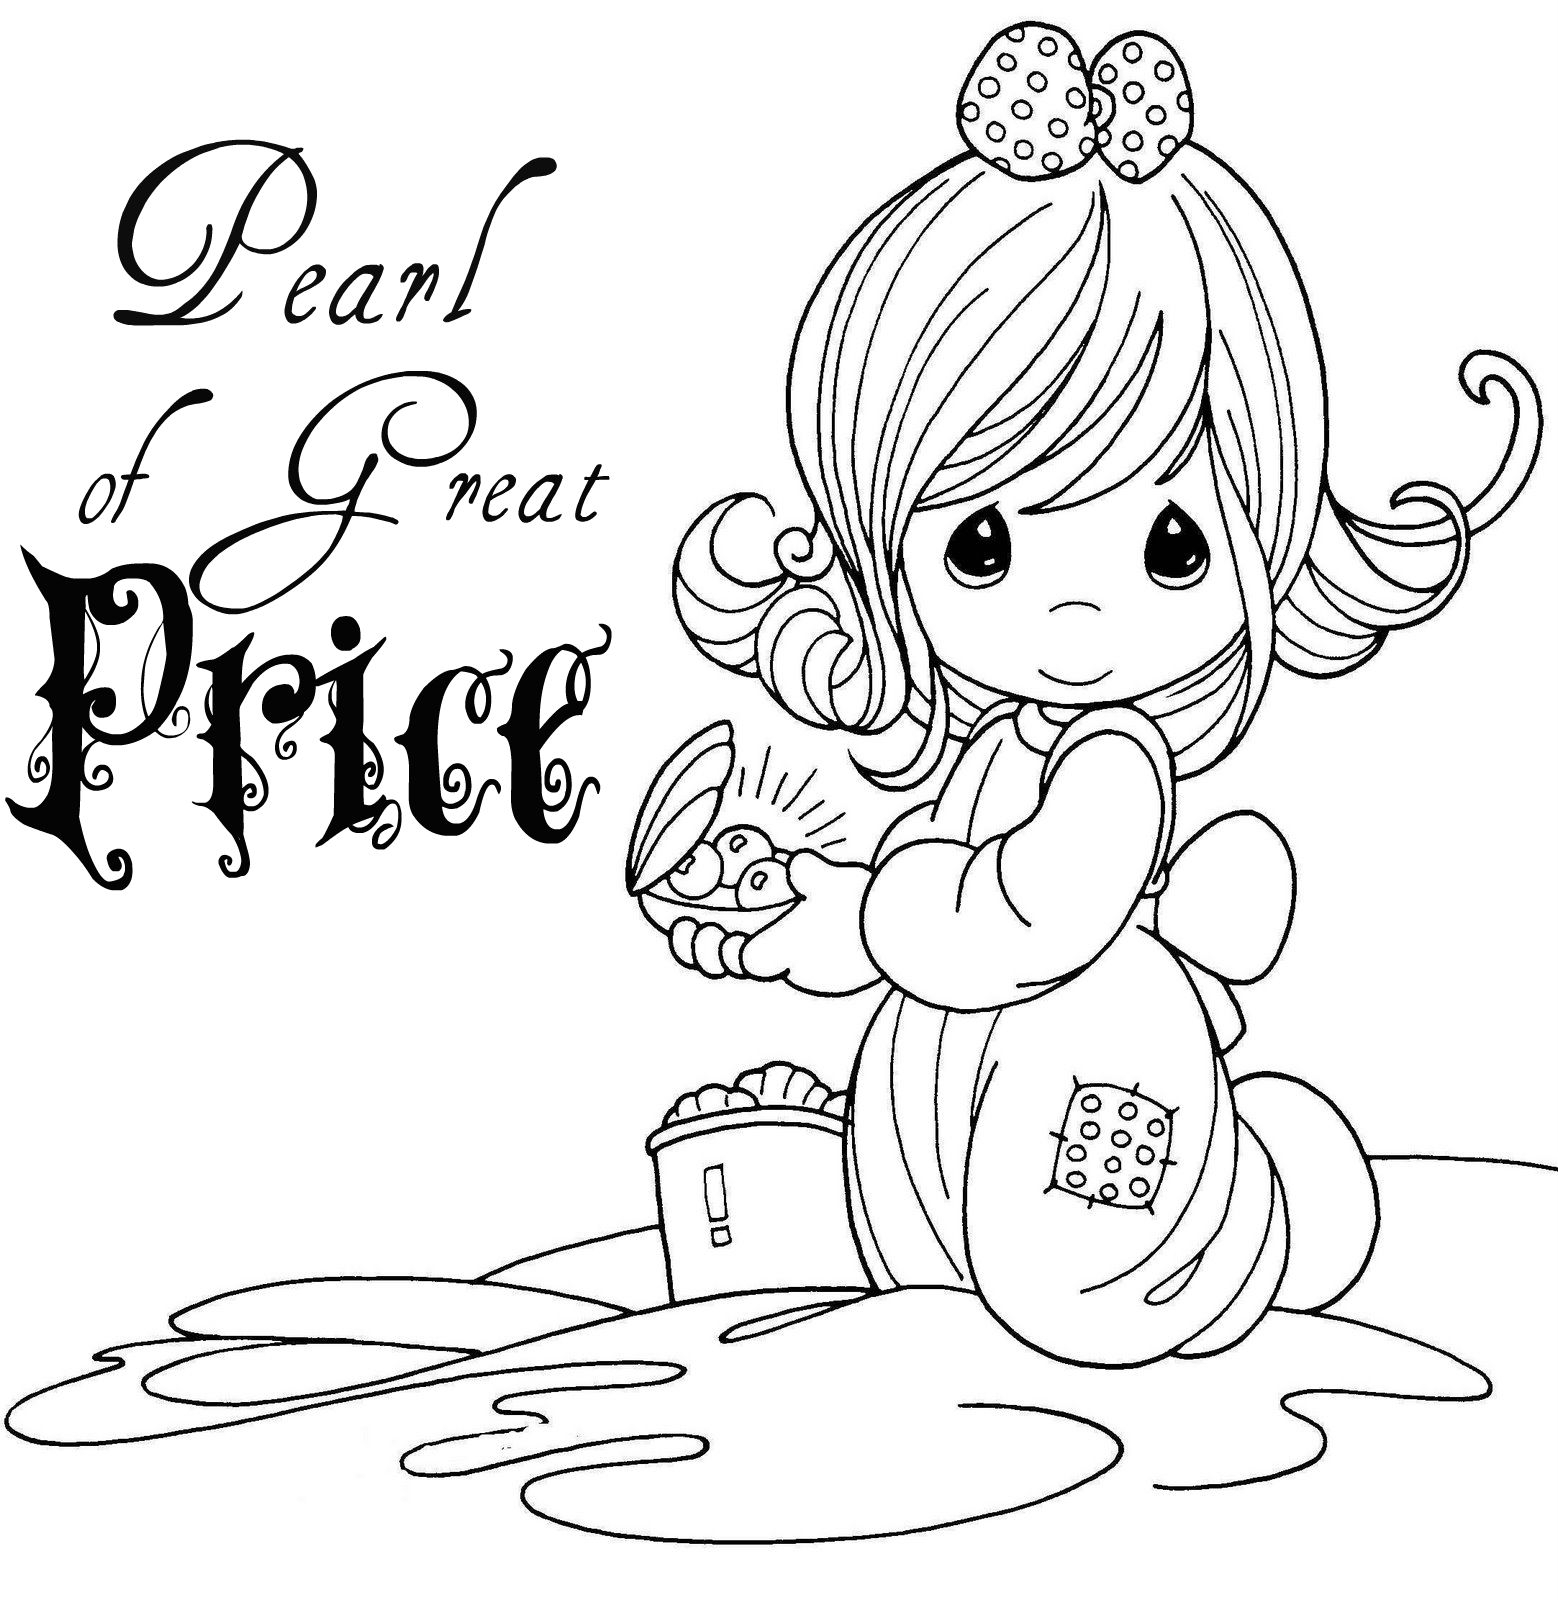 1558x1600 Pearl Of Great Price Conference Coloring Book New Coloring Sheets